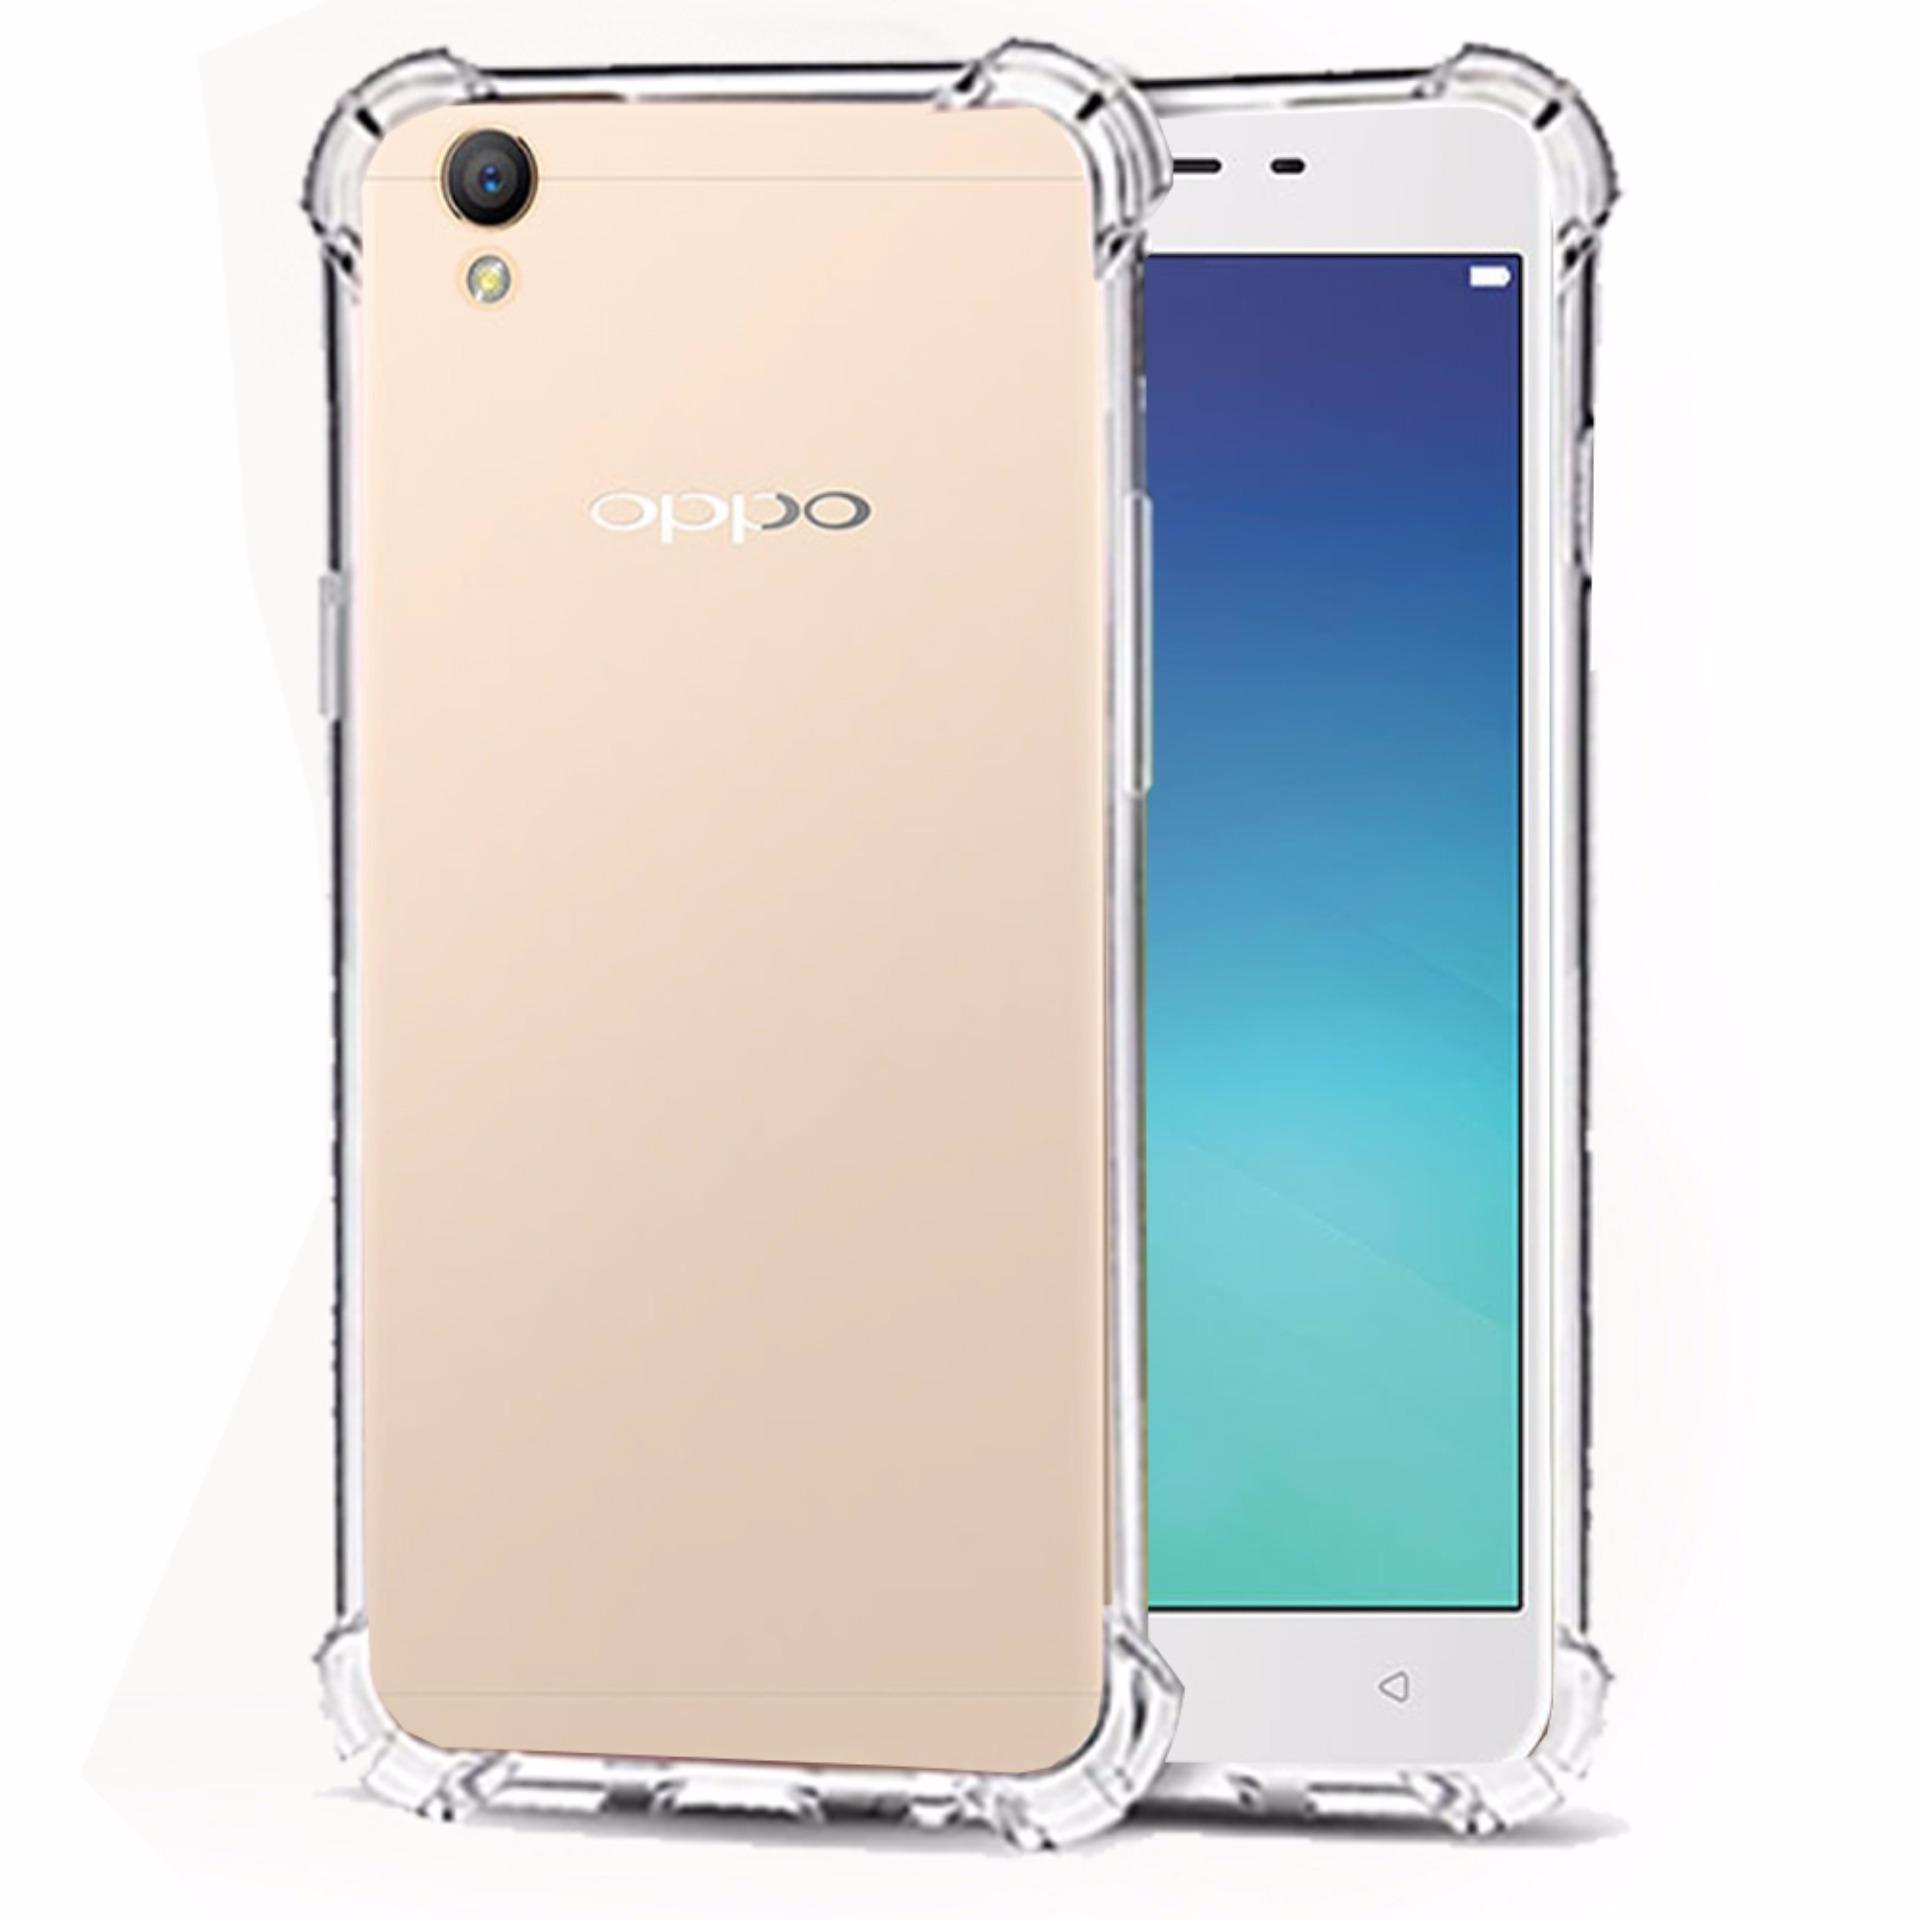 ... Love Phone Holder Ring Mutiara Jelly Silicone Casing Samsung A5 . Source · in Malaysia Source · Neo 9 Oppo Source Sarung Pelindung Hp Case Terlengkap .